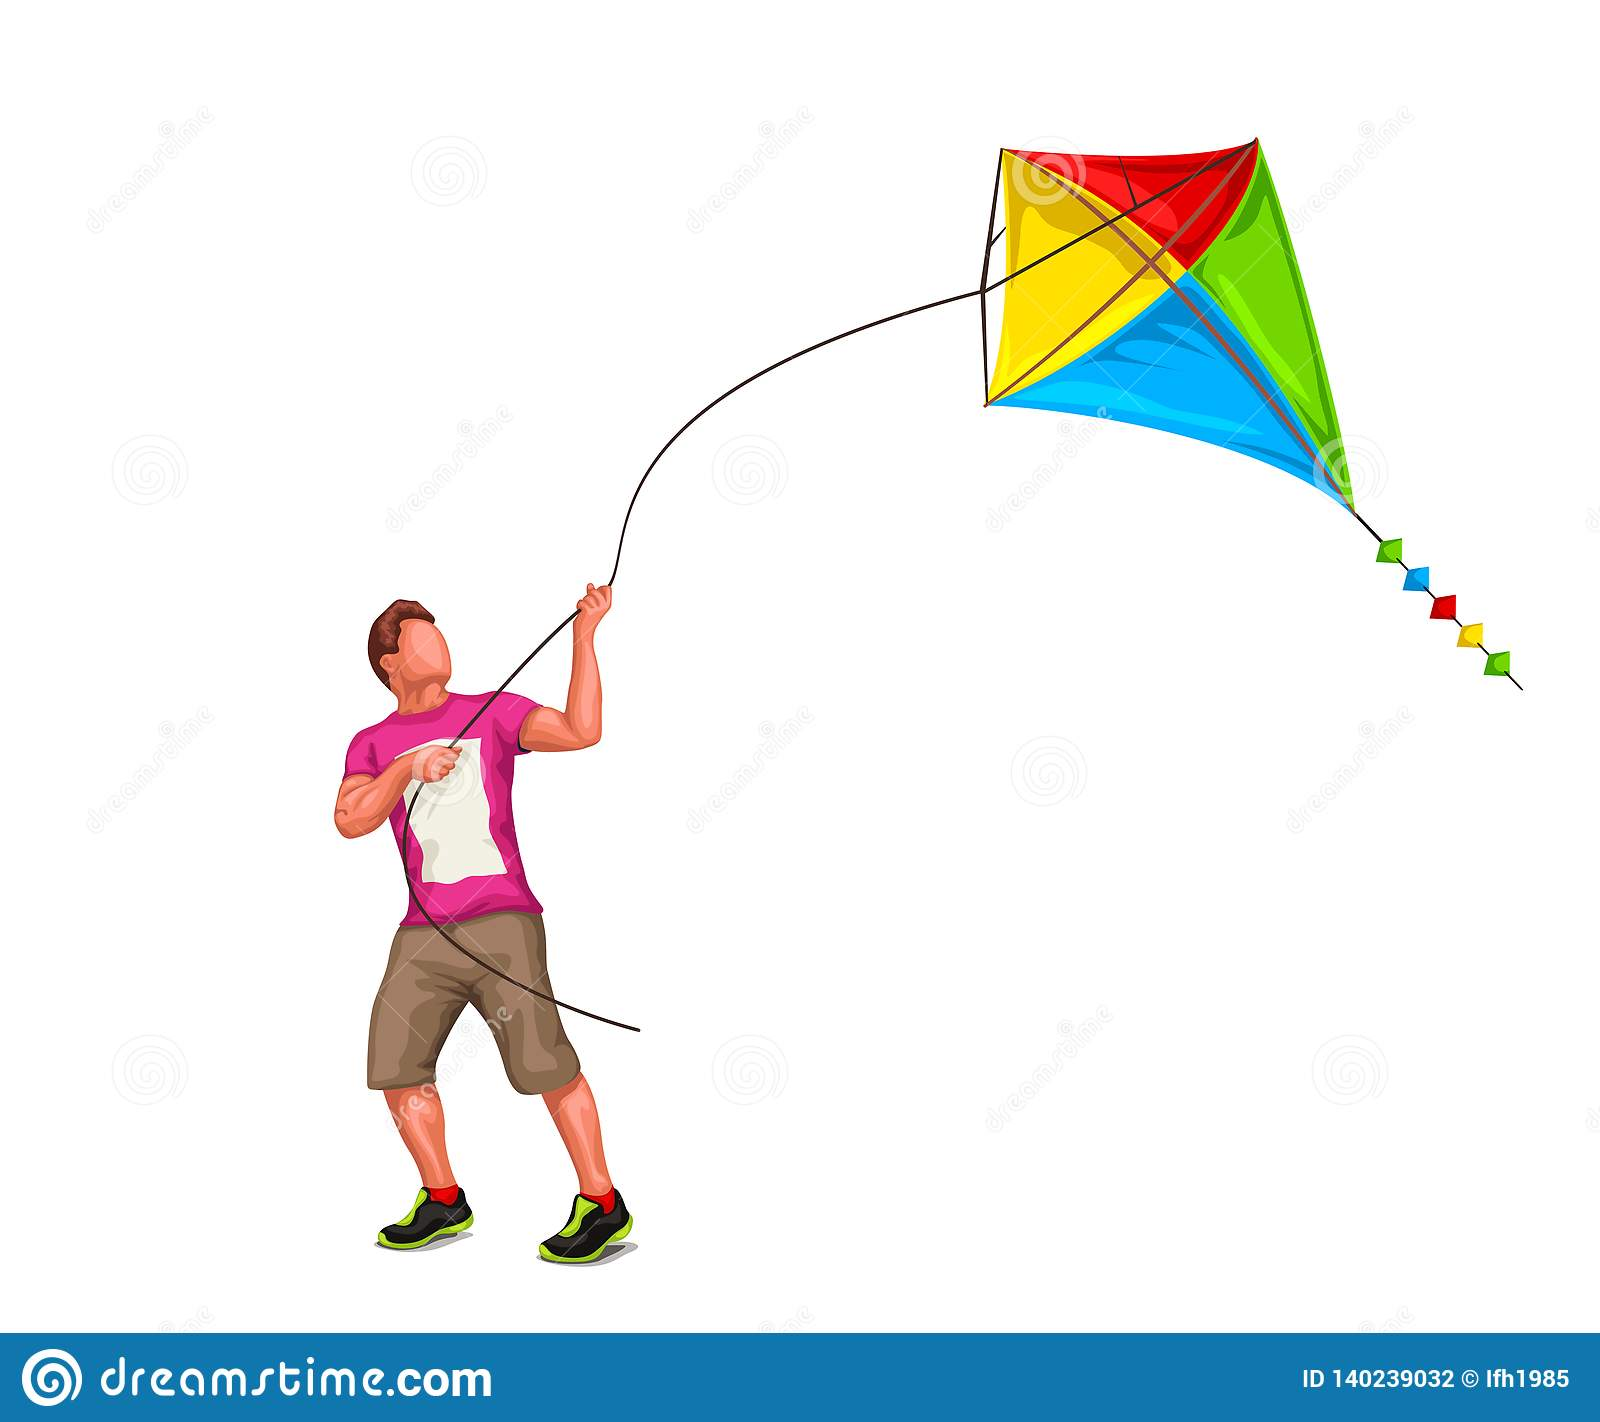 Kite Cartoons Illustrations Amp Vector Stock Images